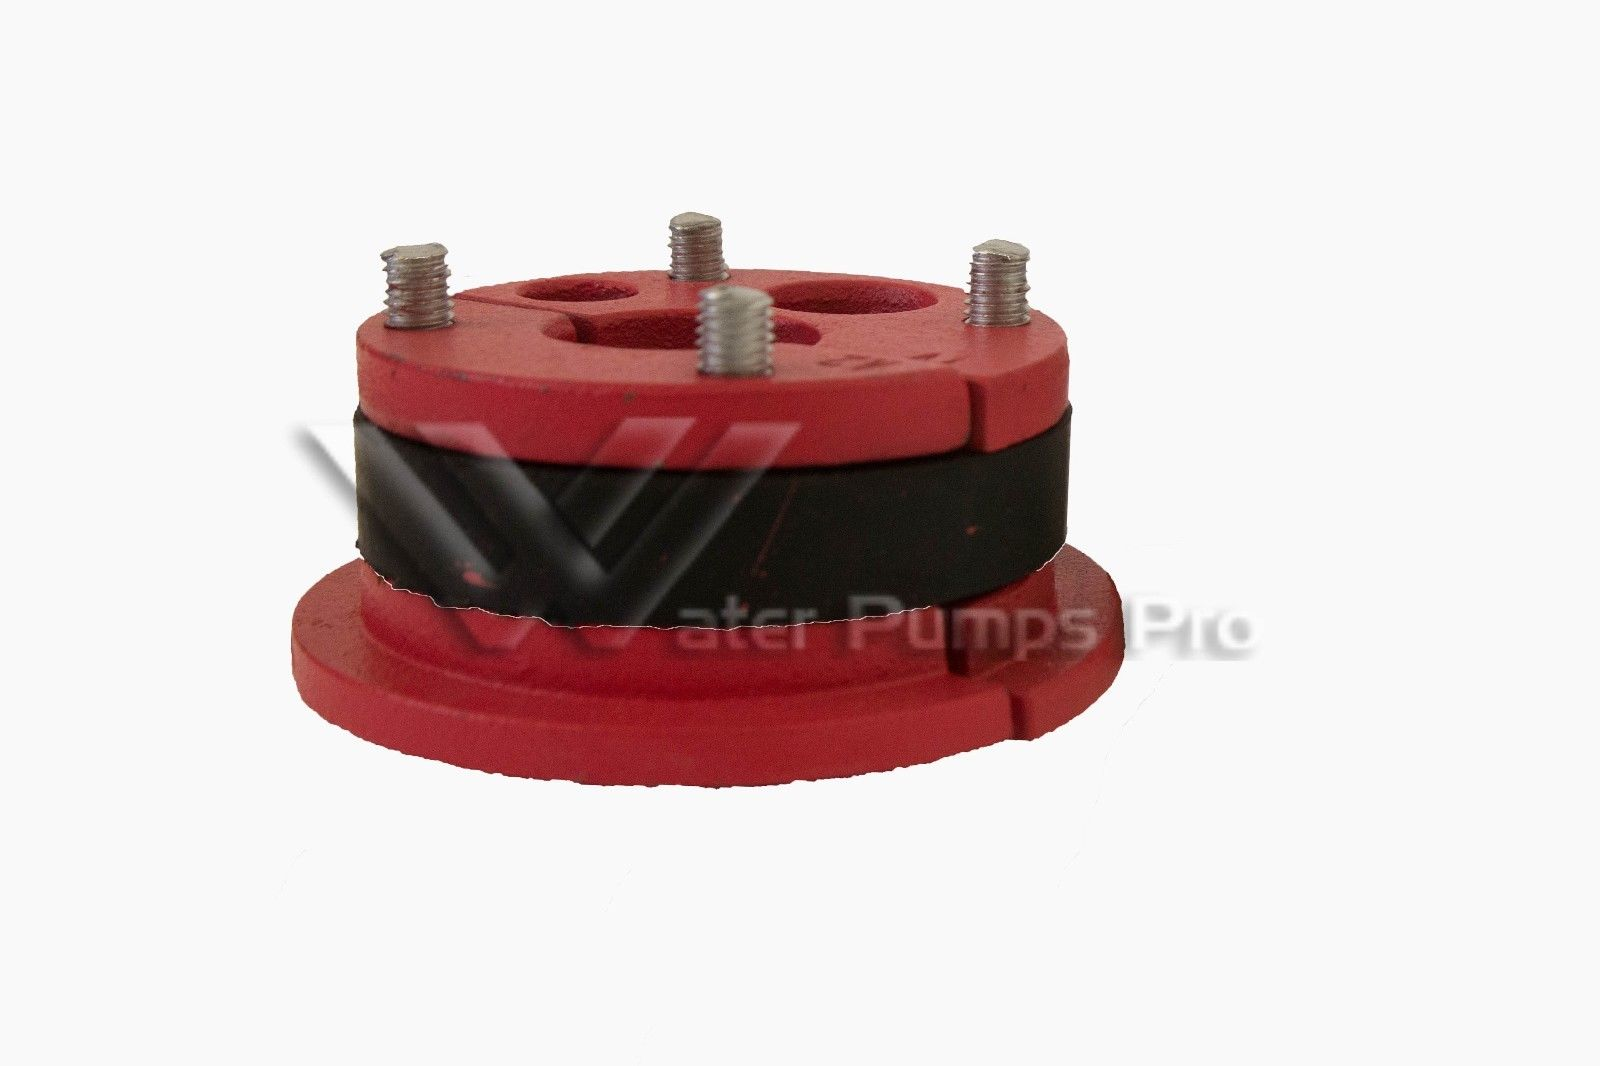 Merrill WS600150 Cast Iron Well Seal